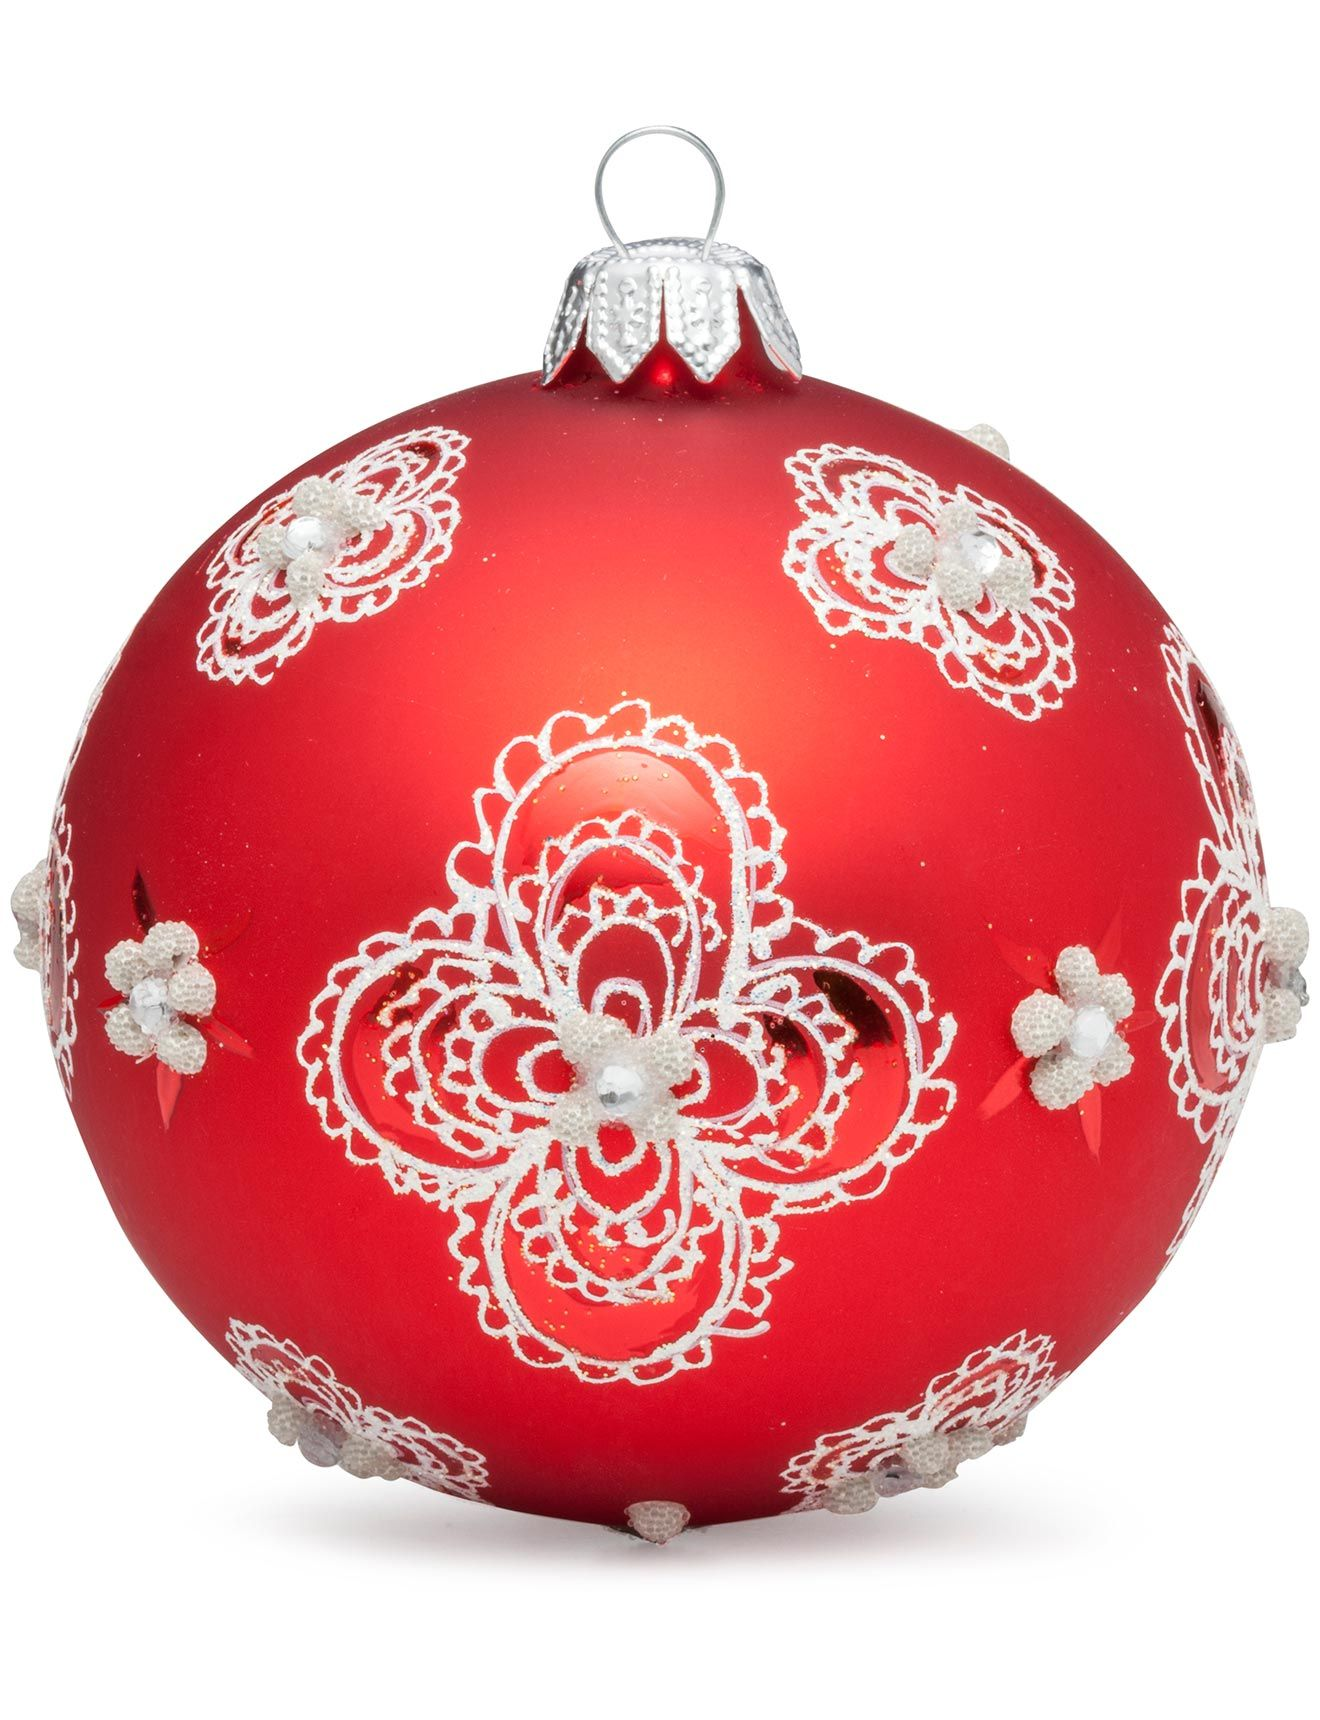 Dagmara Lacy Doilies Ornament 8Cm At David Jones Store #Christmas